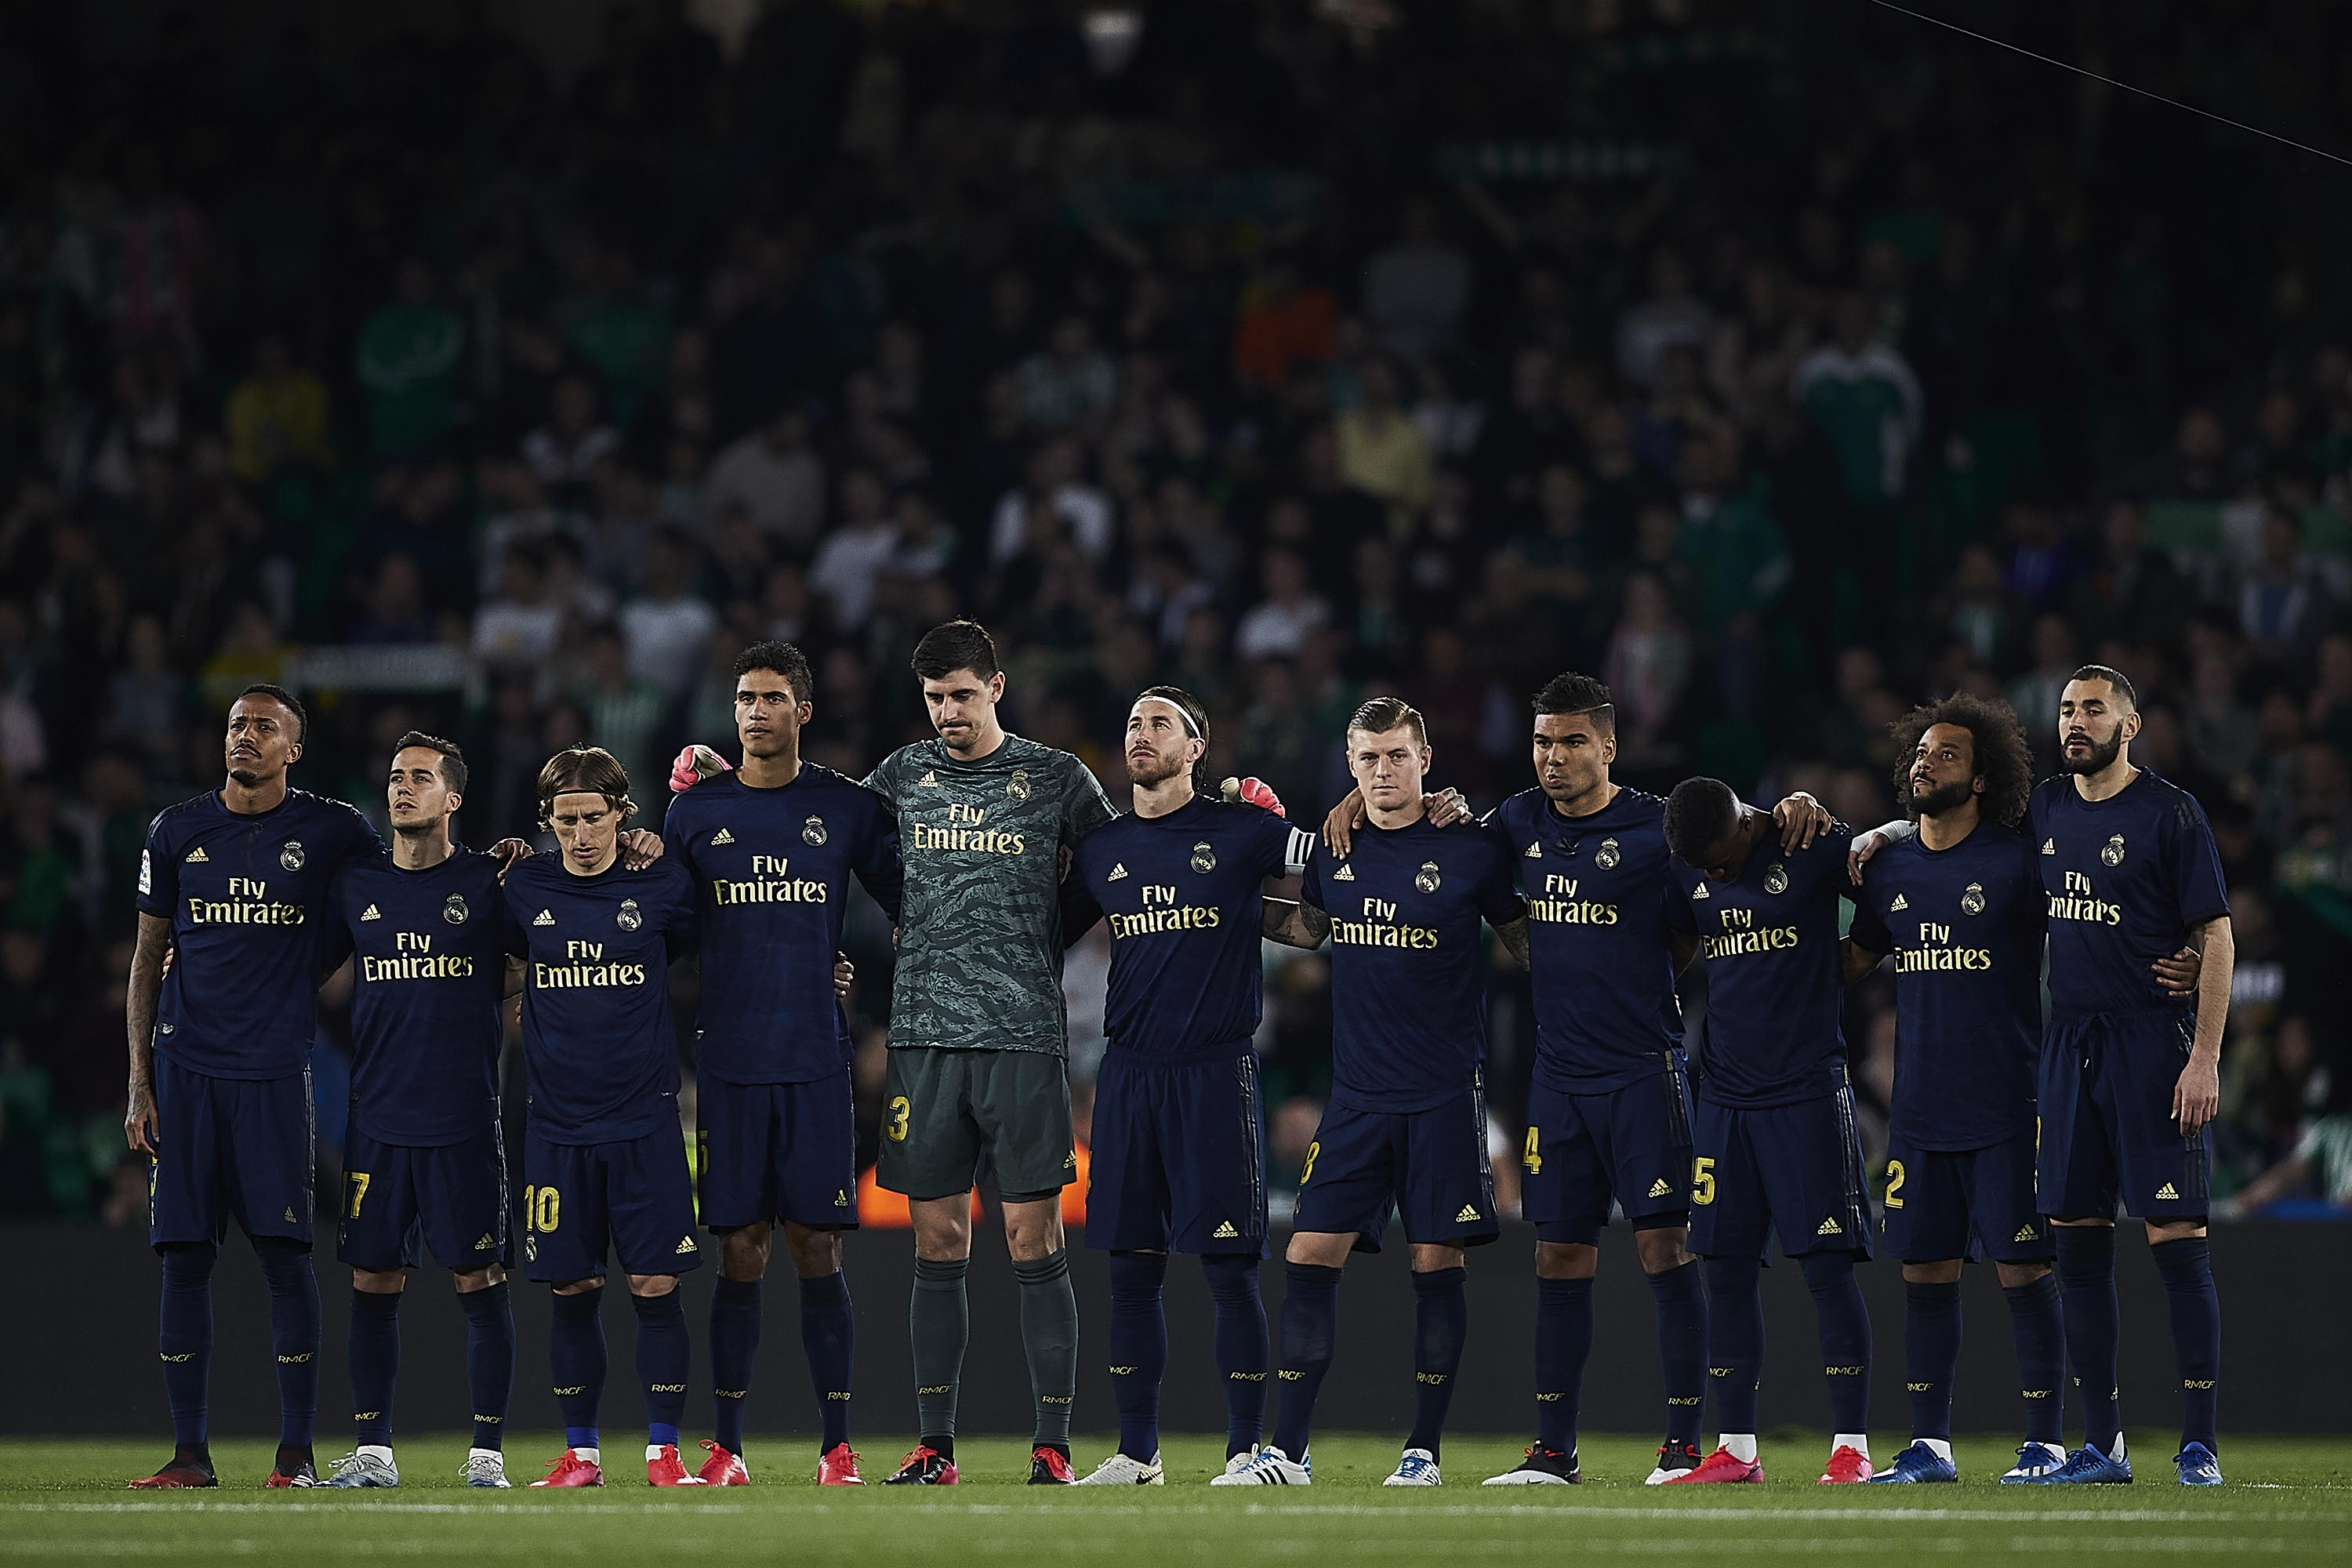 Players of Real Madrid stand on the pitch prior to a Liga match with Real Betis, in Seville, Spain, on March 8.